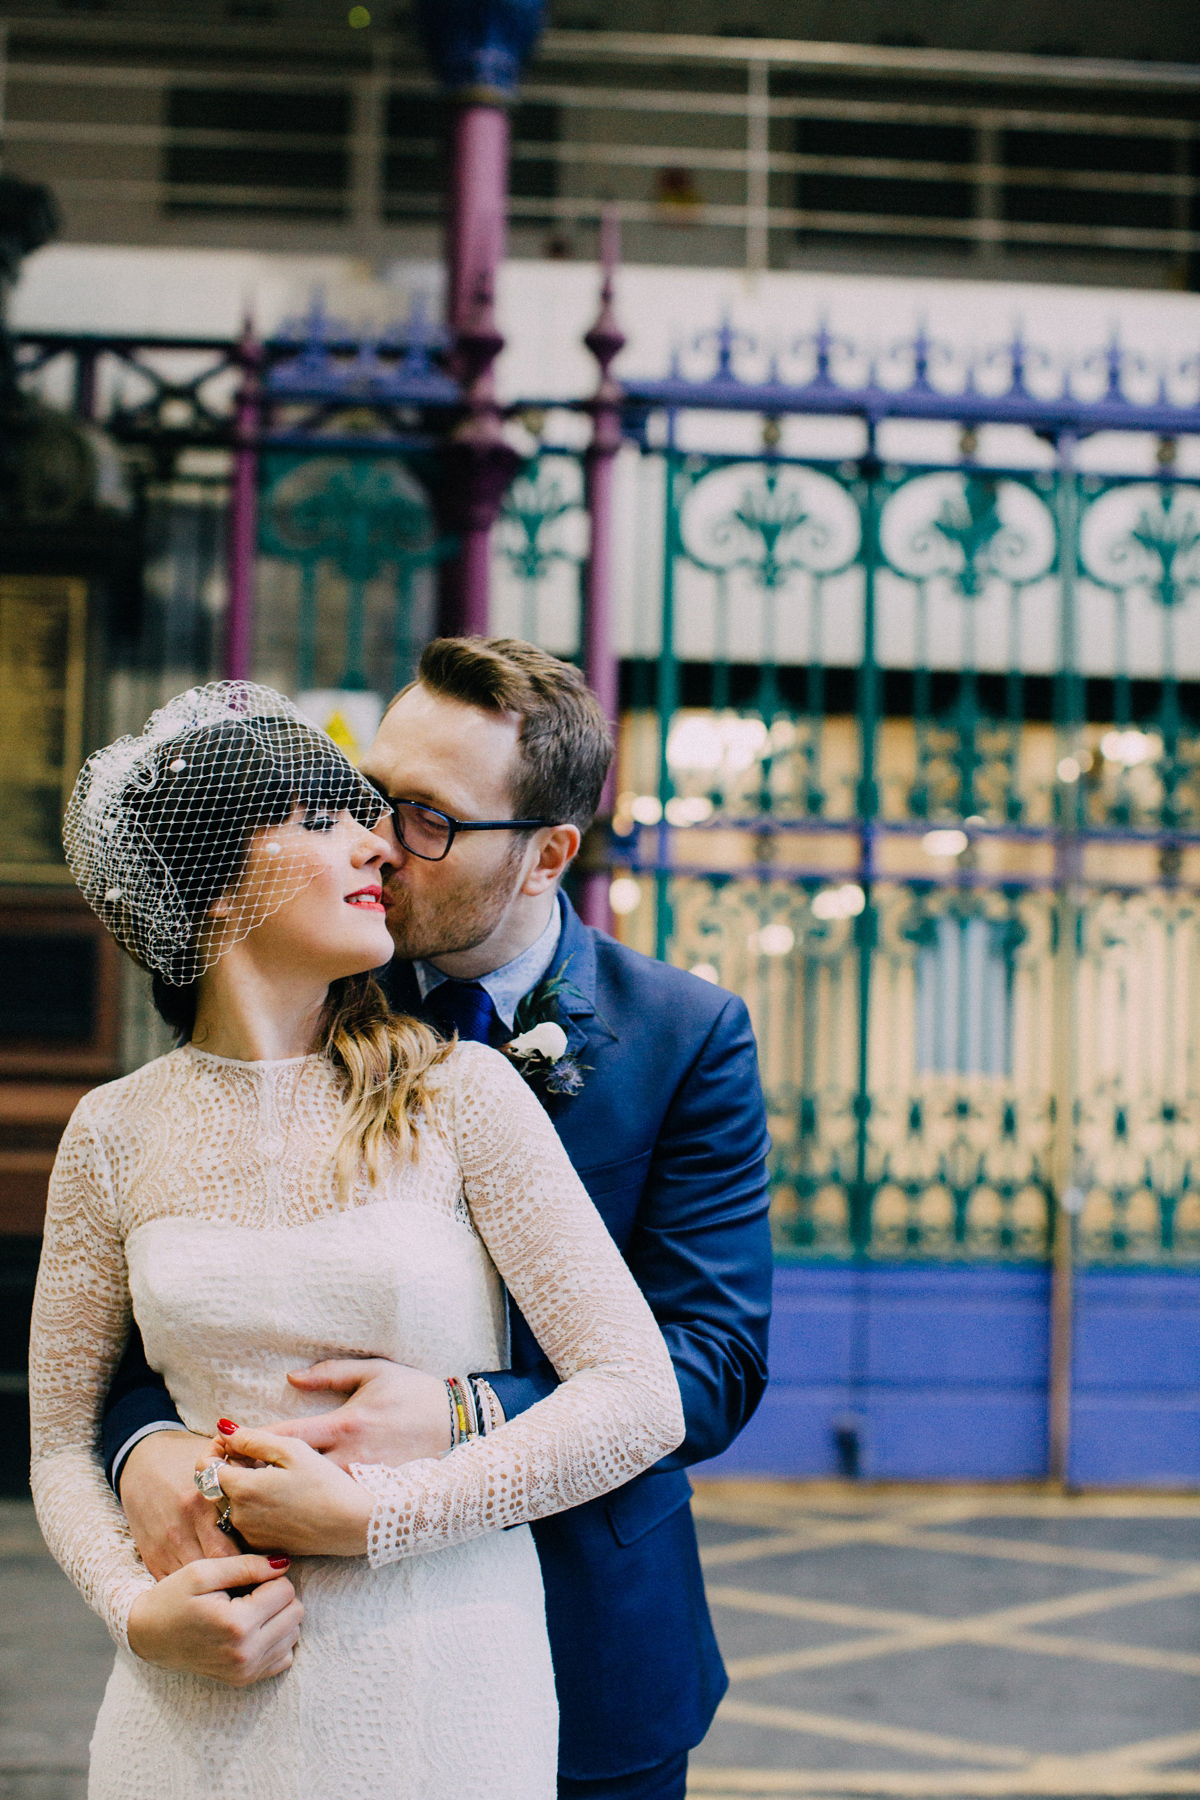 A Long Sleeved Jesus Peiro Dress for a Cool, Modern, London Pub Wedding